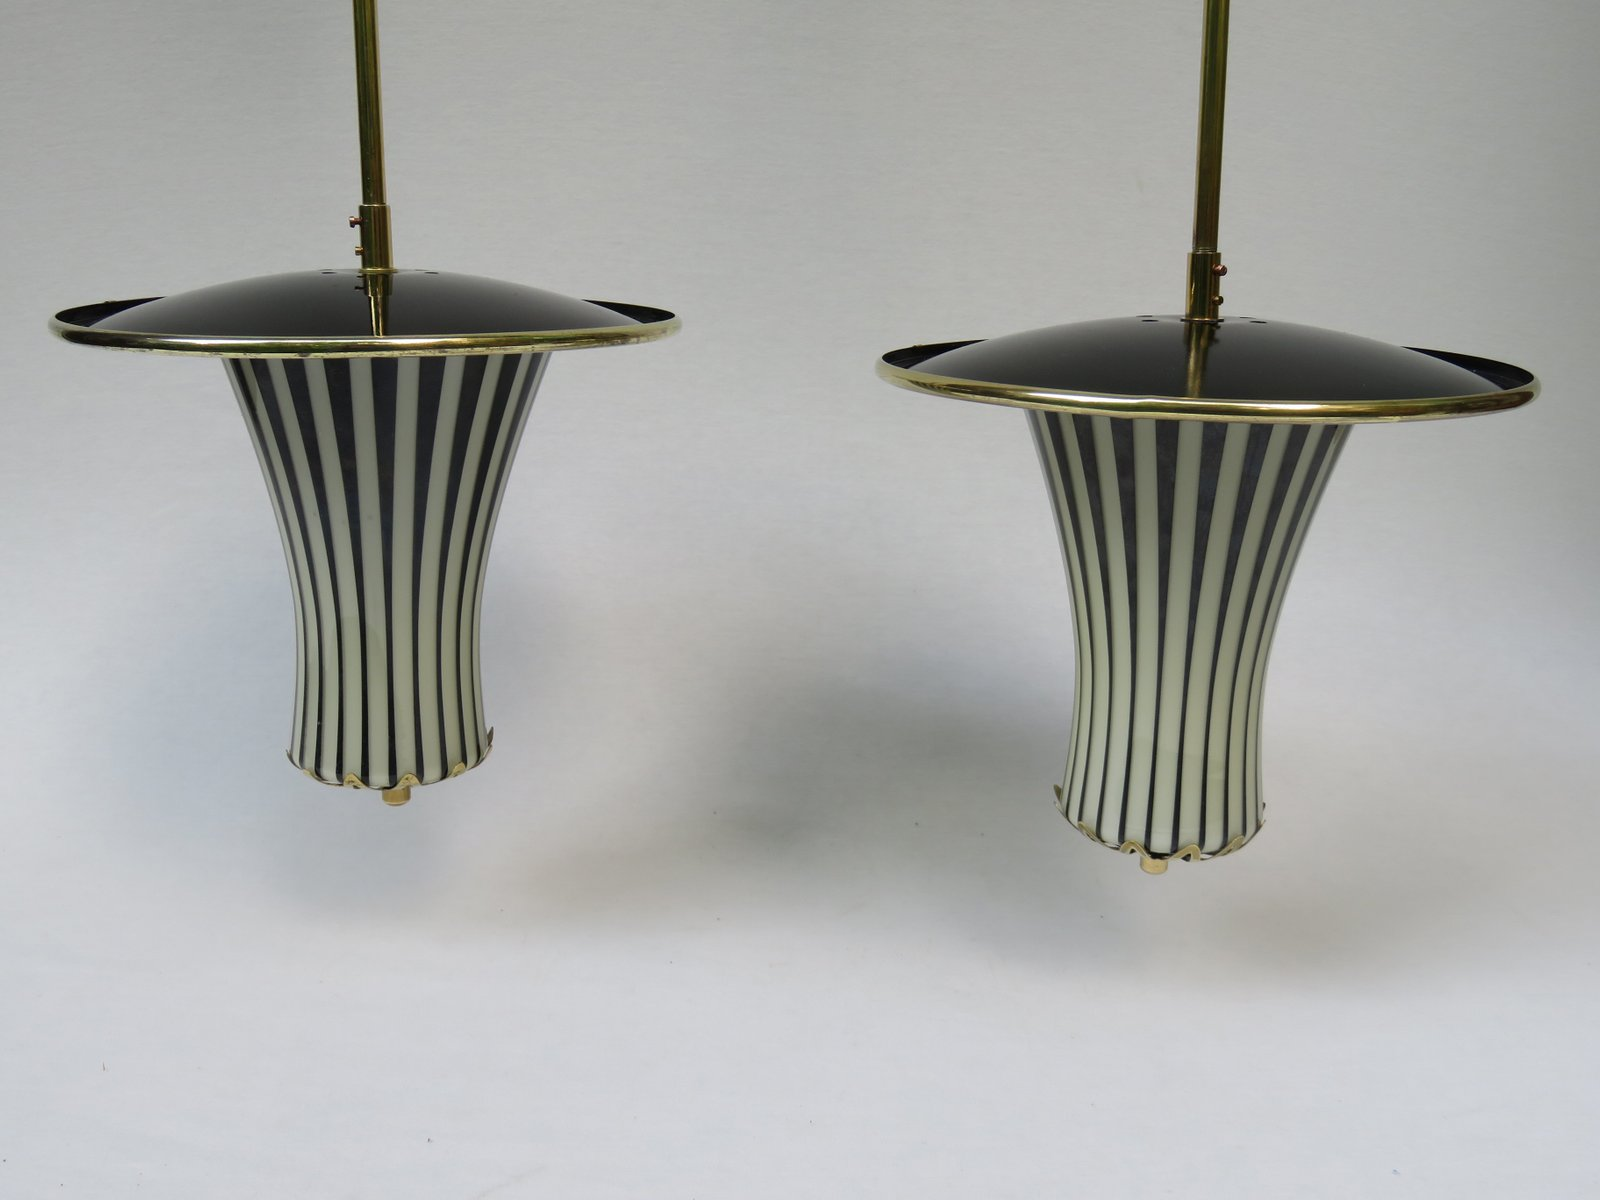 black and white italian pendant lamps 1950s set of 2 for sale at